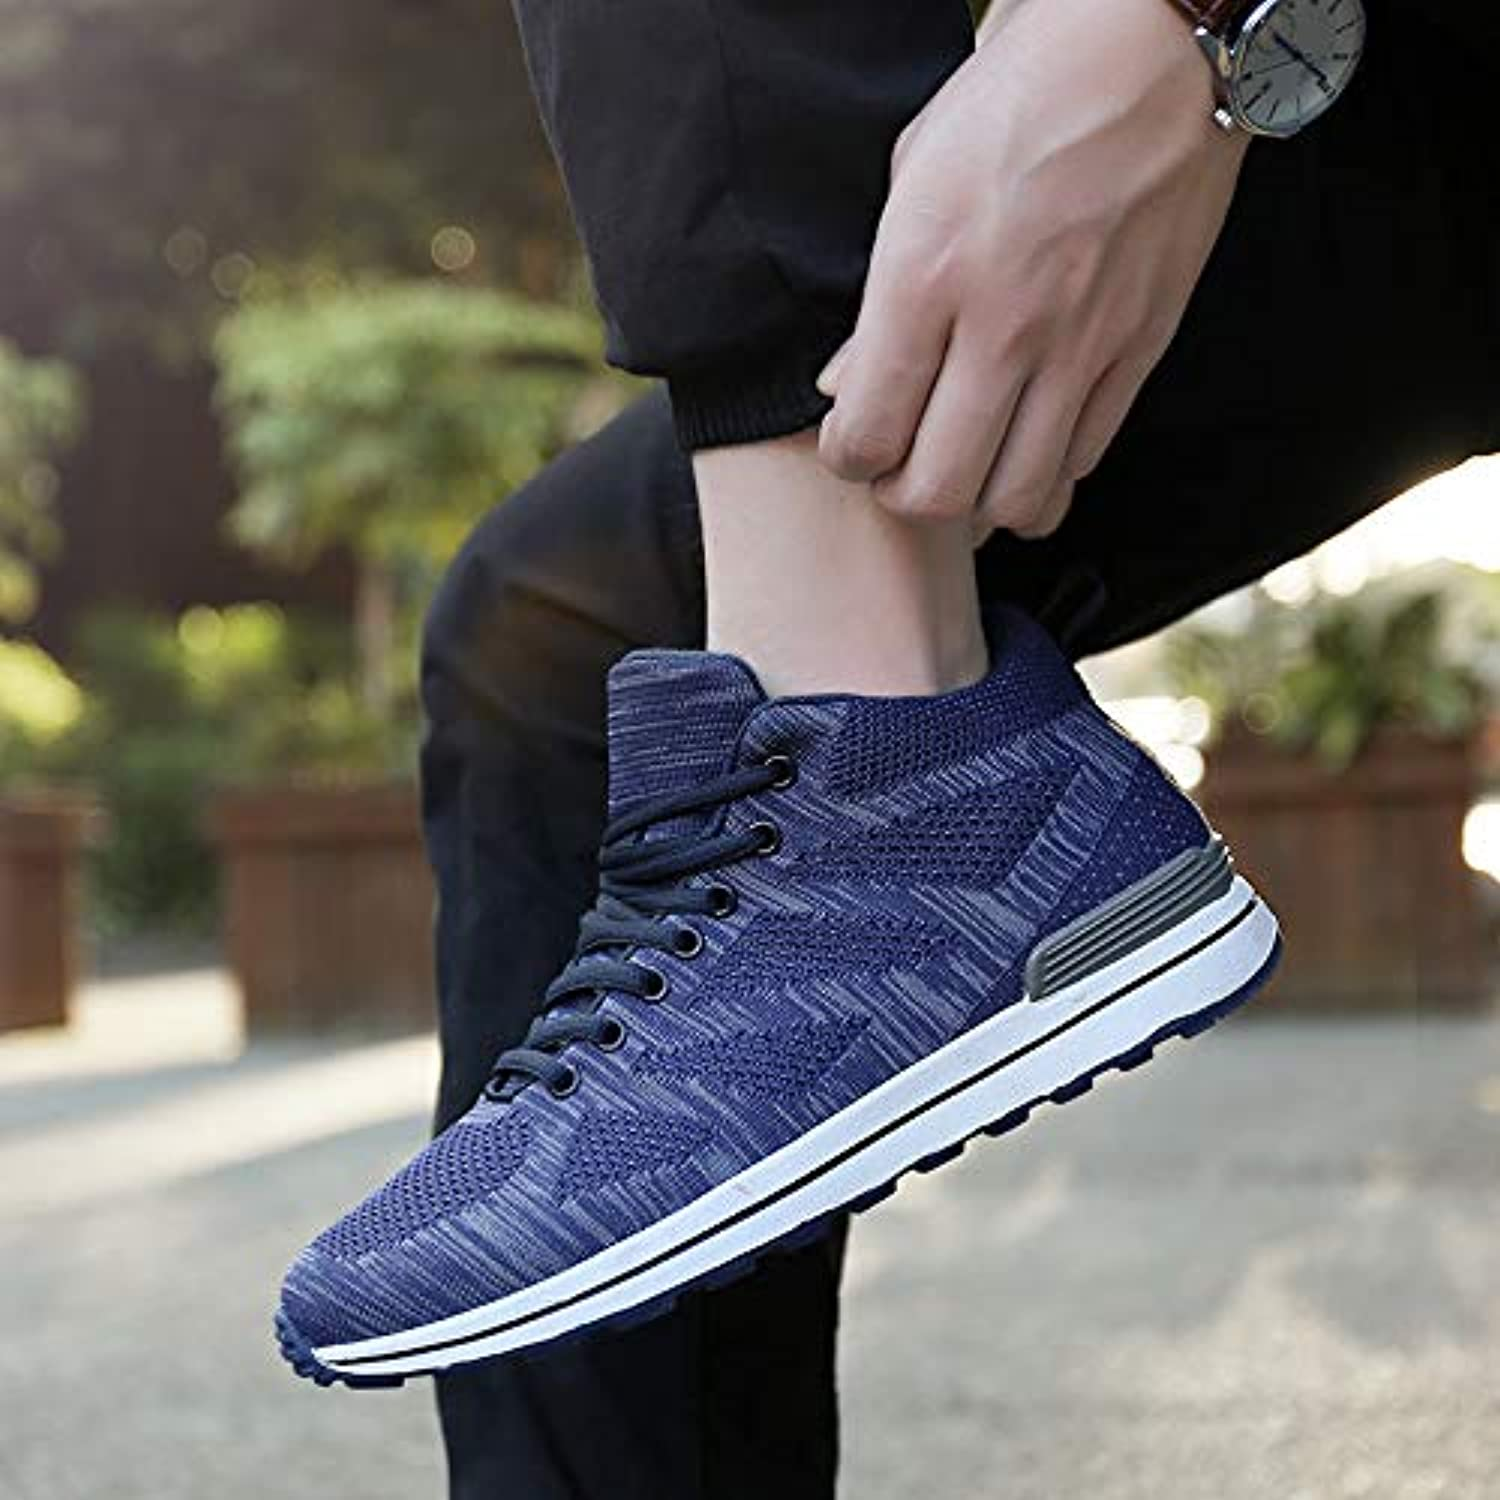 LOVDRAM Men's shoes Flying Woven Mesh Cloth Fashion Running shoes Sneakers Spring And Summer Autumn Men'S shoes Running shoes Sneakers Low Help